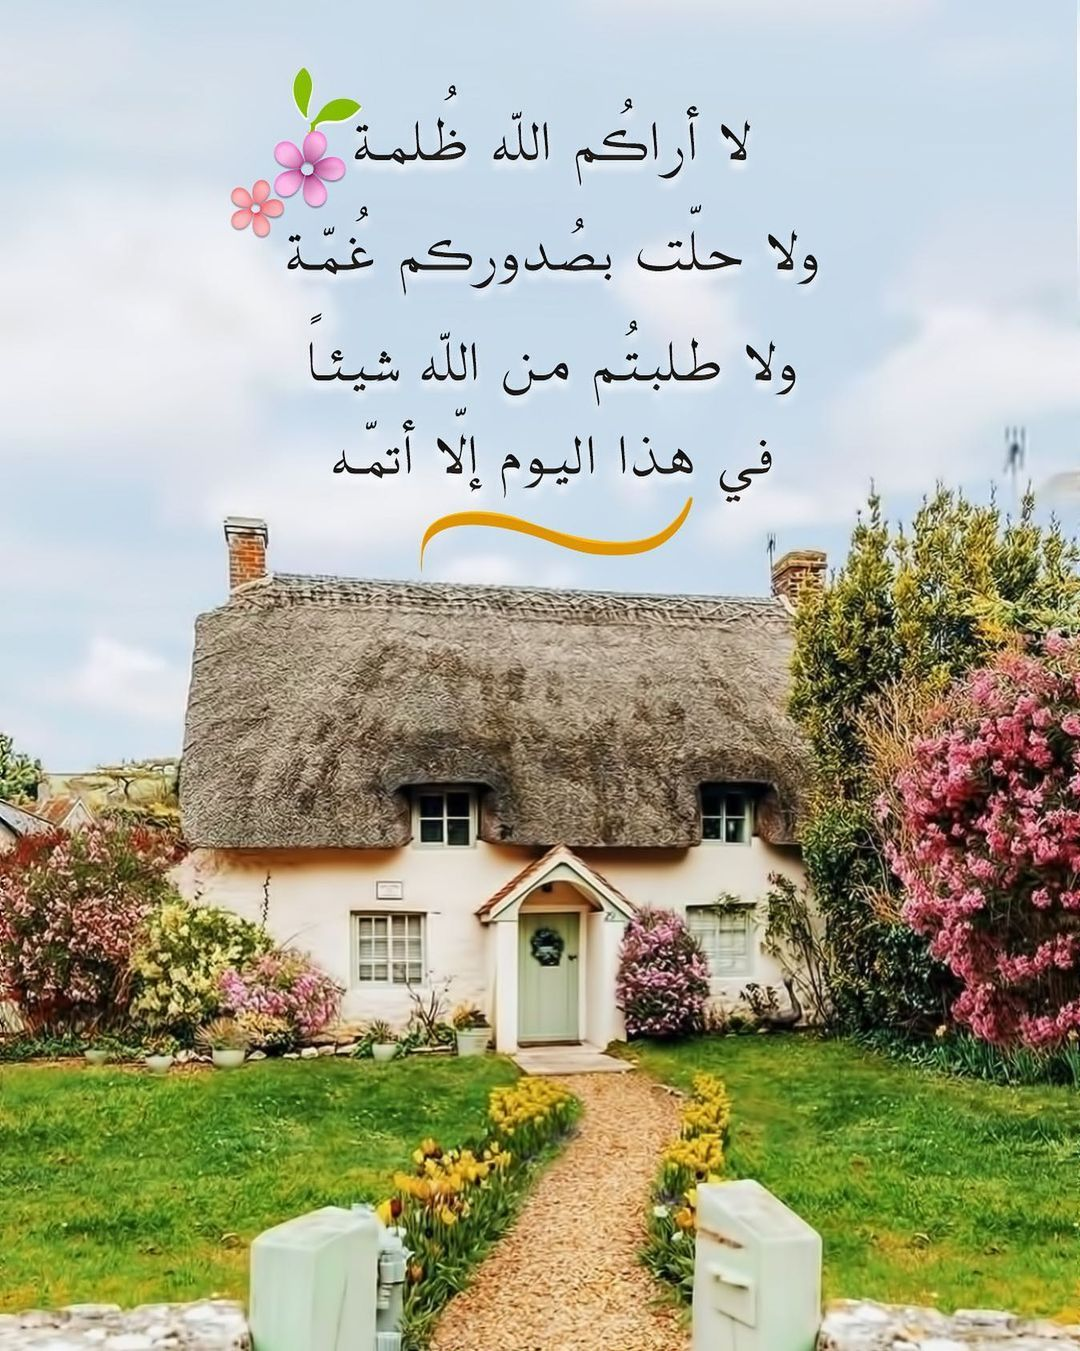 P E A R L A On Instagram لا أراكم الله ظ لمة ولا حل ت بص دوركم غ م ة ولا طلبتم من ال Islamic Love Quotes Cool Pictures For Wallpaper Islamic Pictures